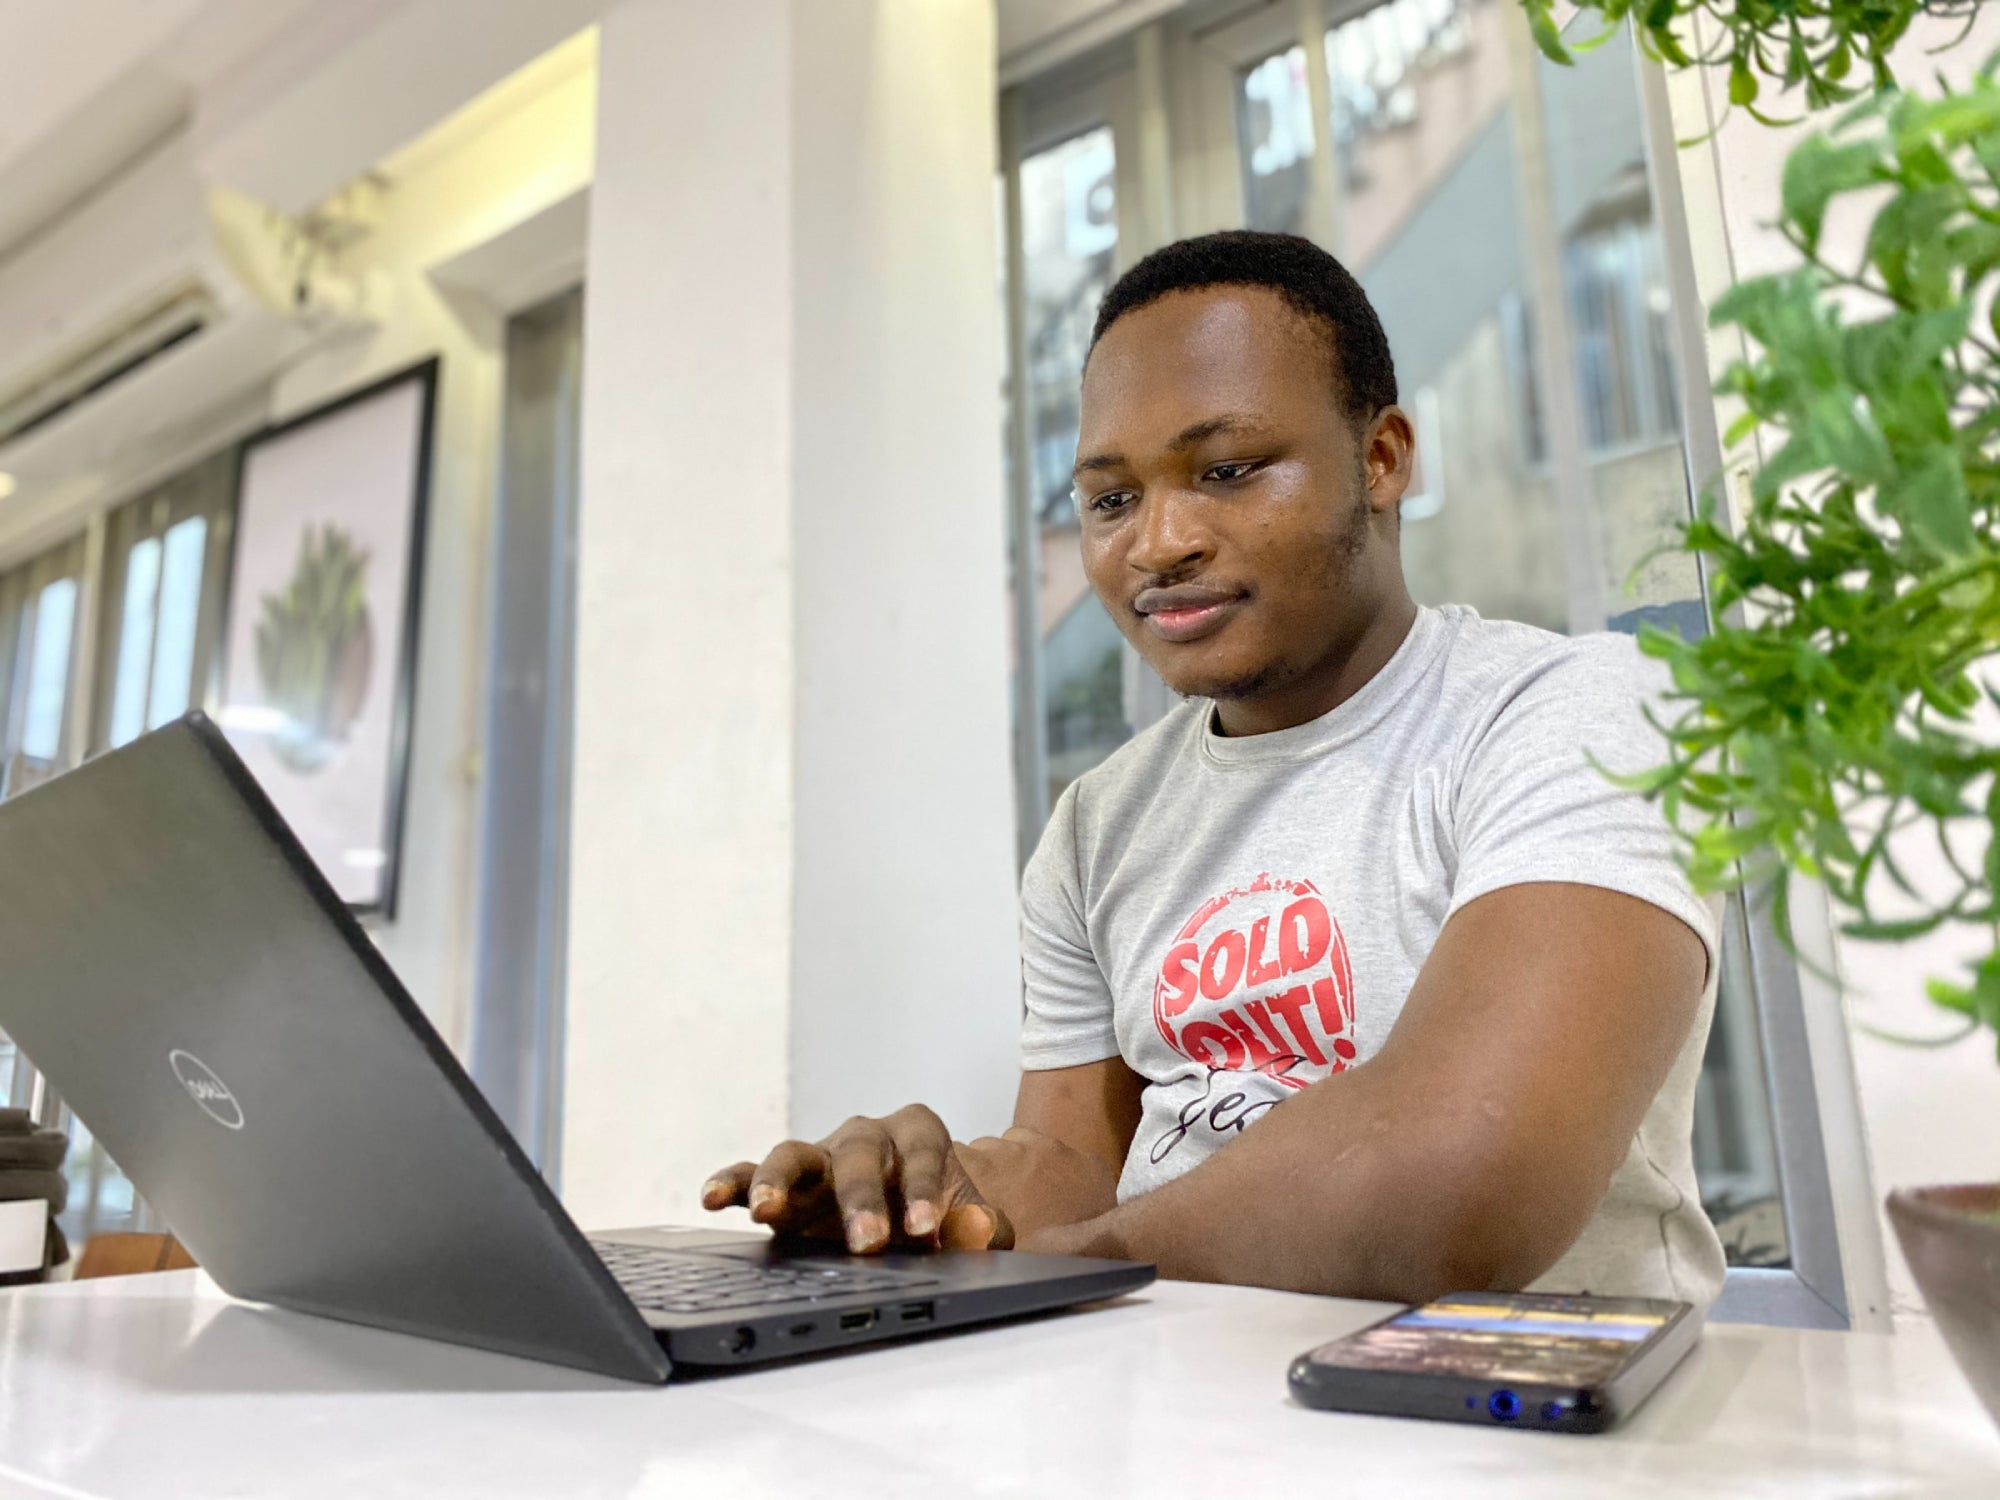 a person sitting at a Dell laptop in a well-lit room by some windows and a plant